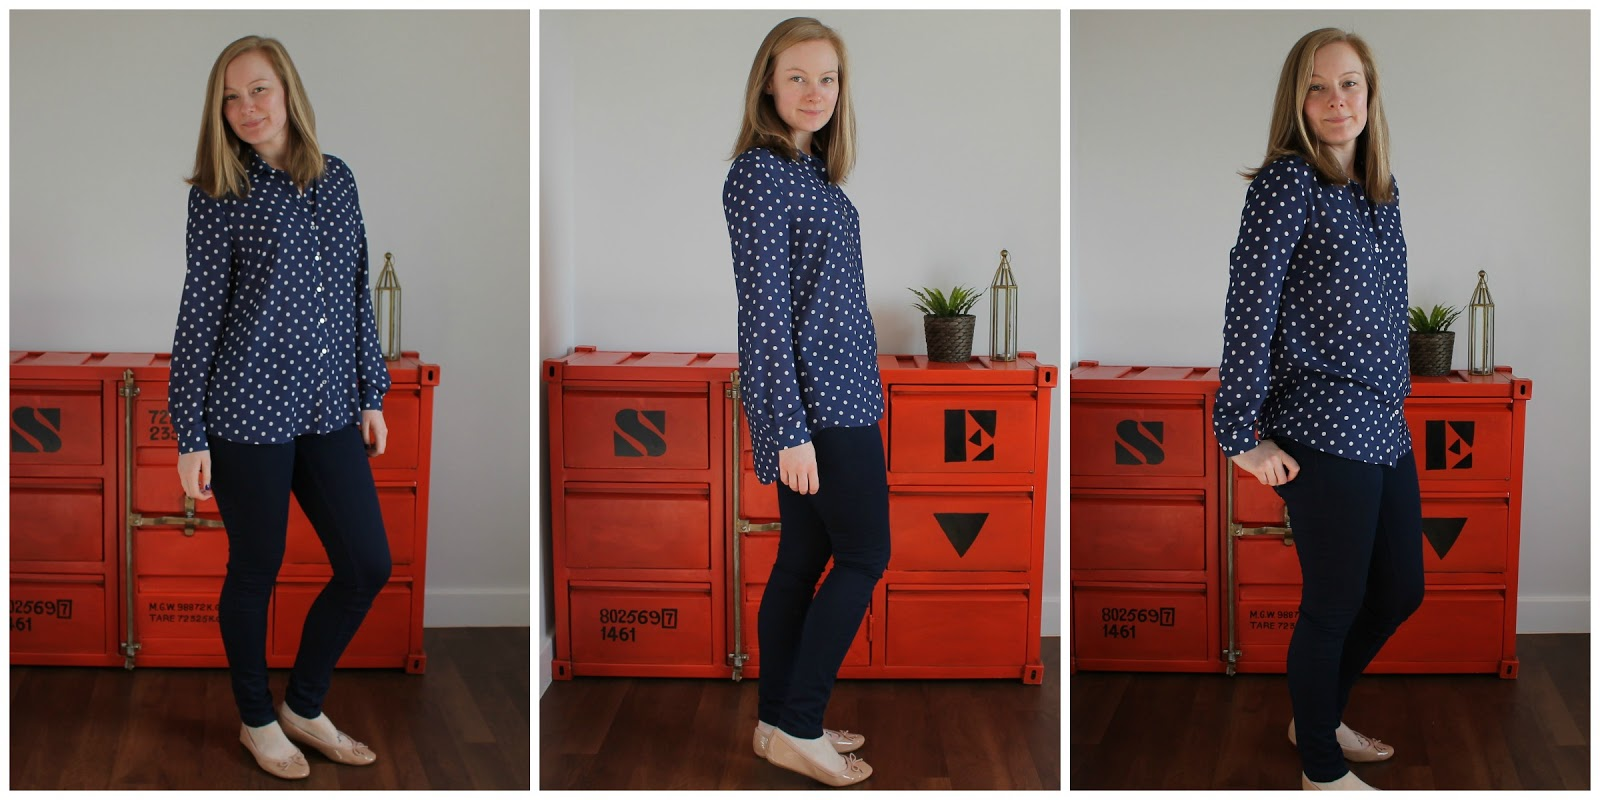 Casual Spring Capsule Wardrobe with George at ASDA